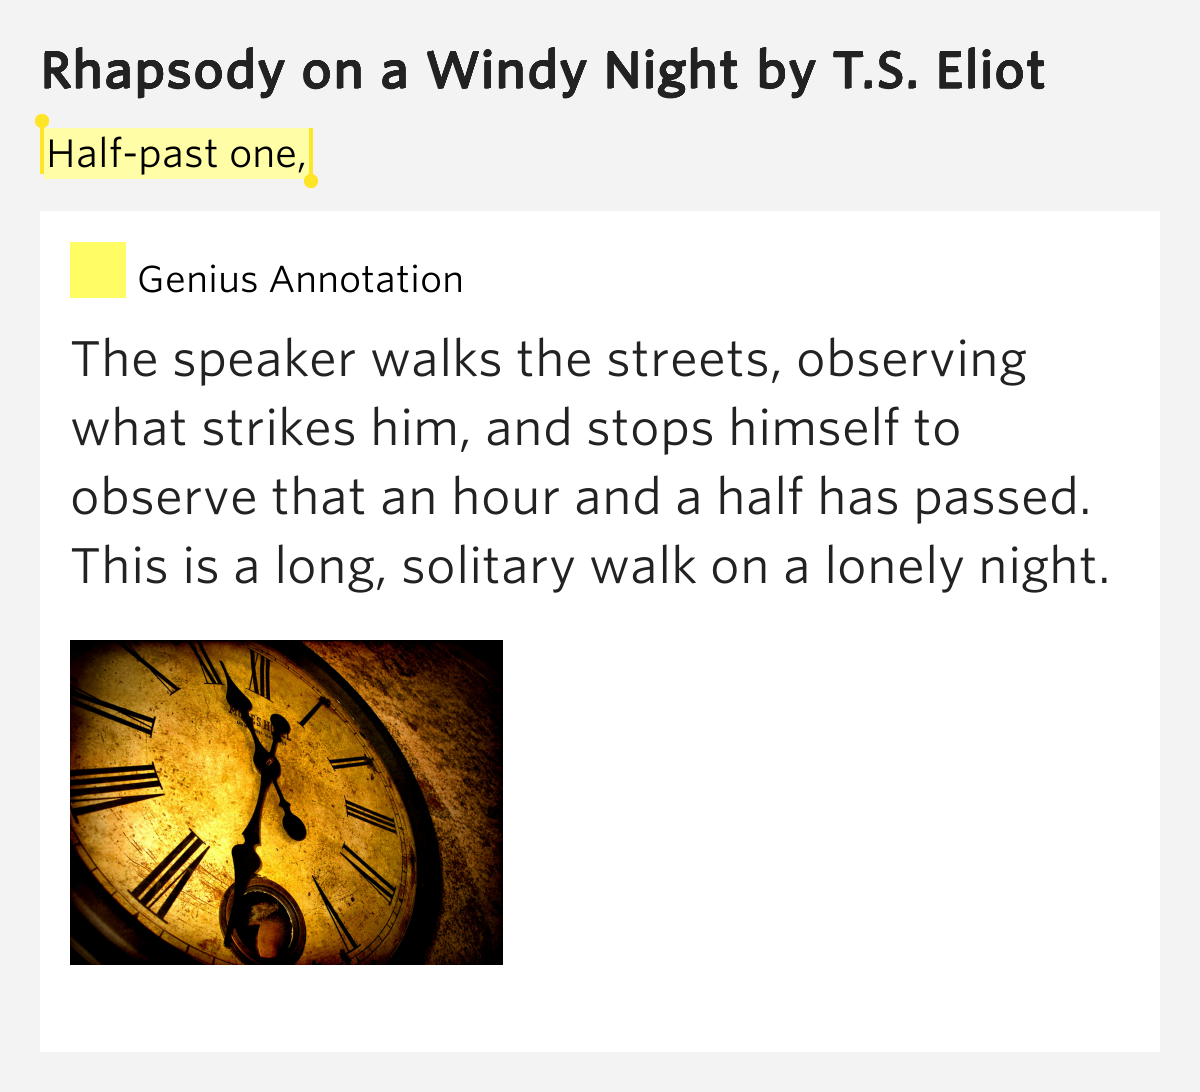 modernism t s eliots rhapsody on The wildly famous show tune memory by andrew lloyd webber was inspired by t s eliot's rhapsody on a windy night and preludes this article analyzes the former.